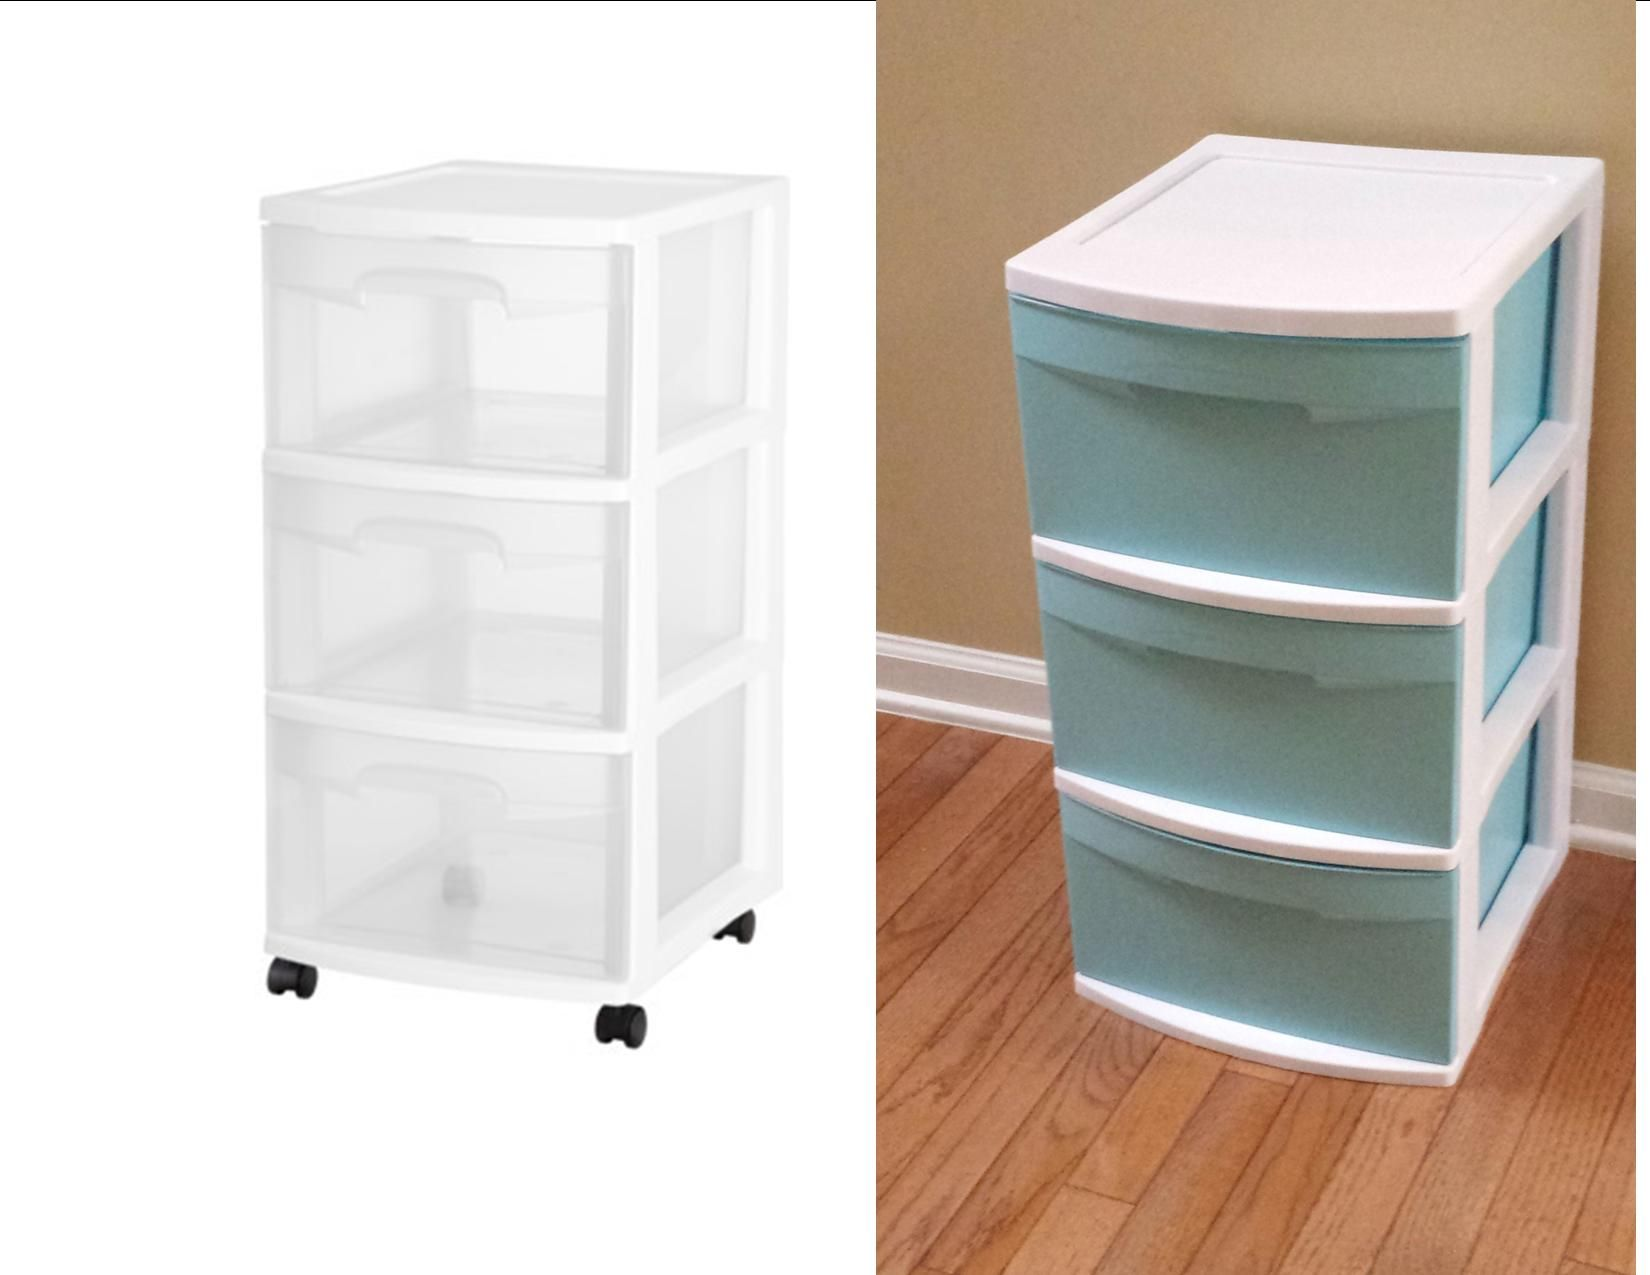 Cajones Almacenaje Plastico My Diy Plastic Drawer Makeover Used Aqua Spray Paint To